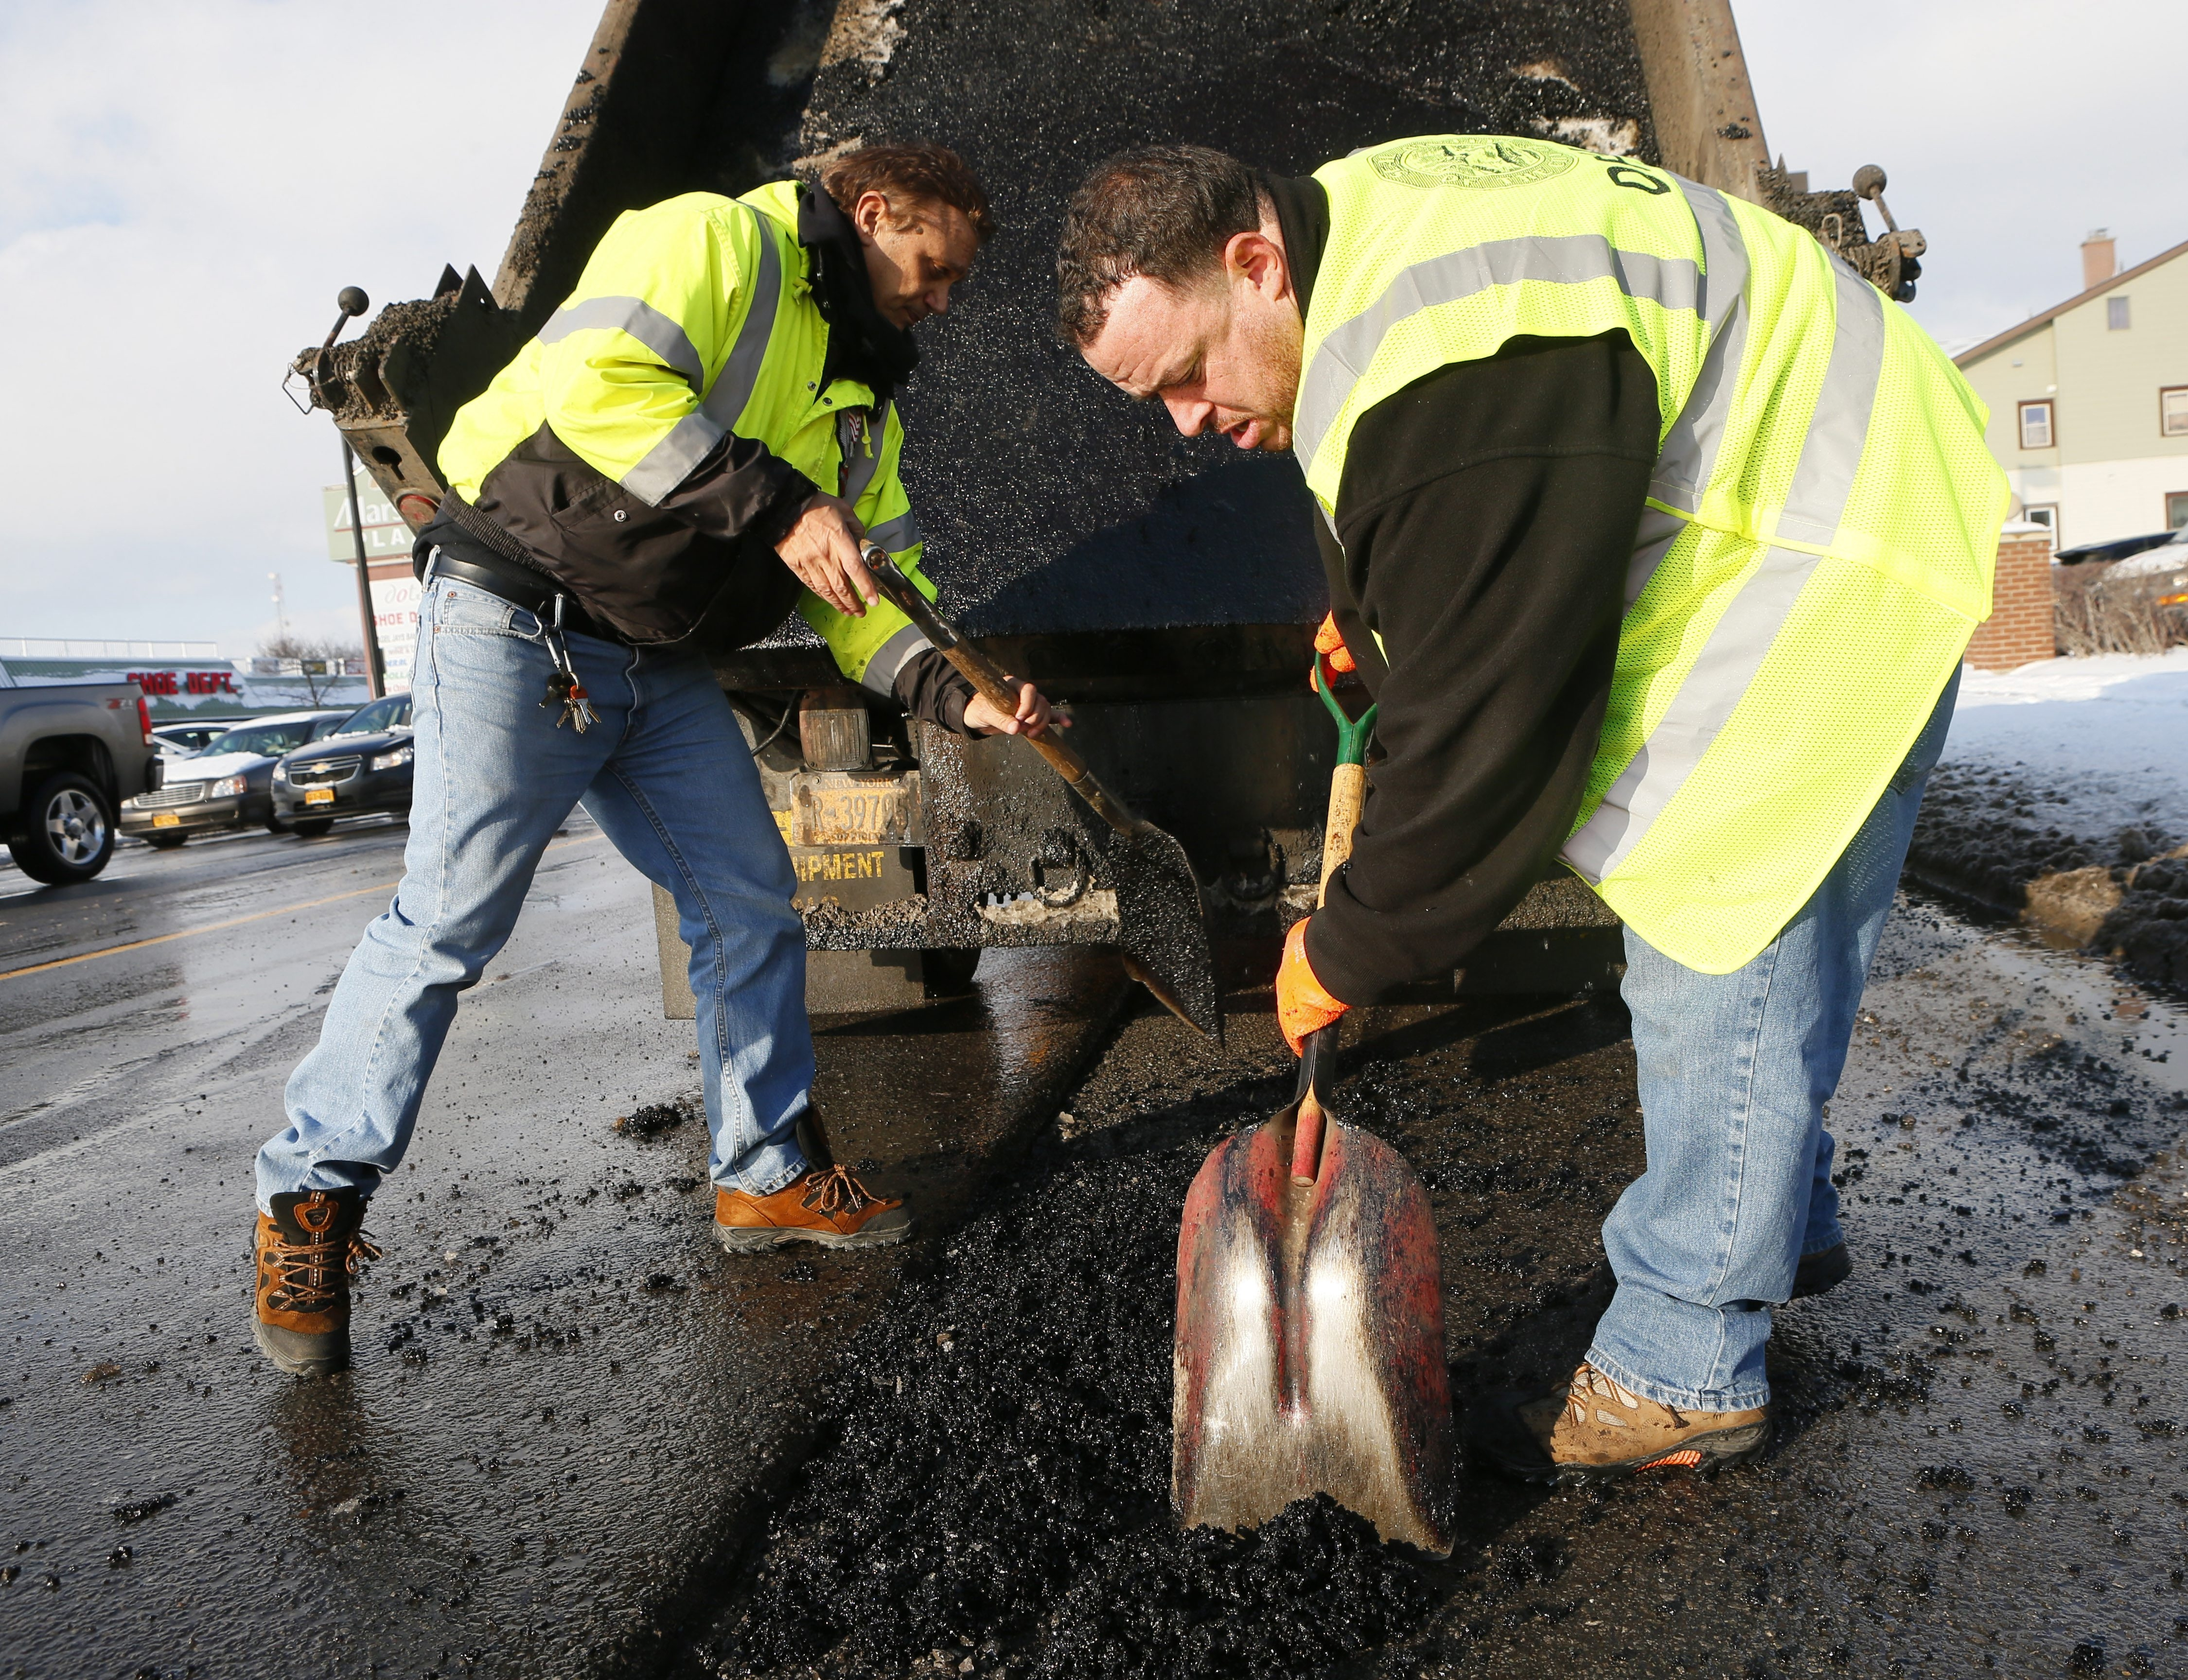 Gary Quatrani, left, and Don Allen Jr. have been on pothole duty early due to conditions that usually don't pop up until later in winter.